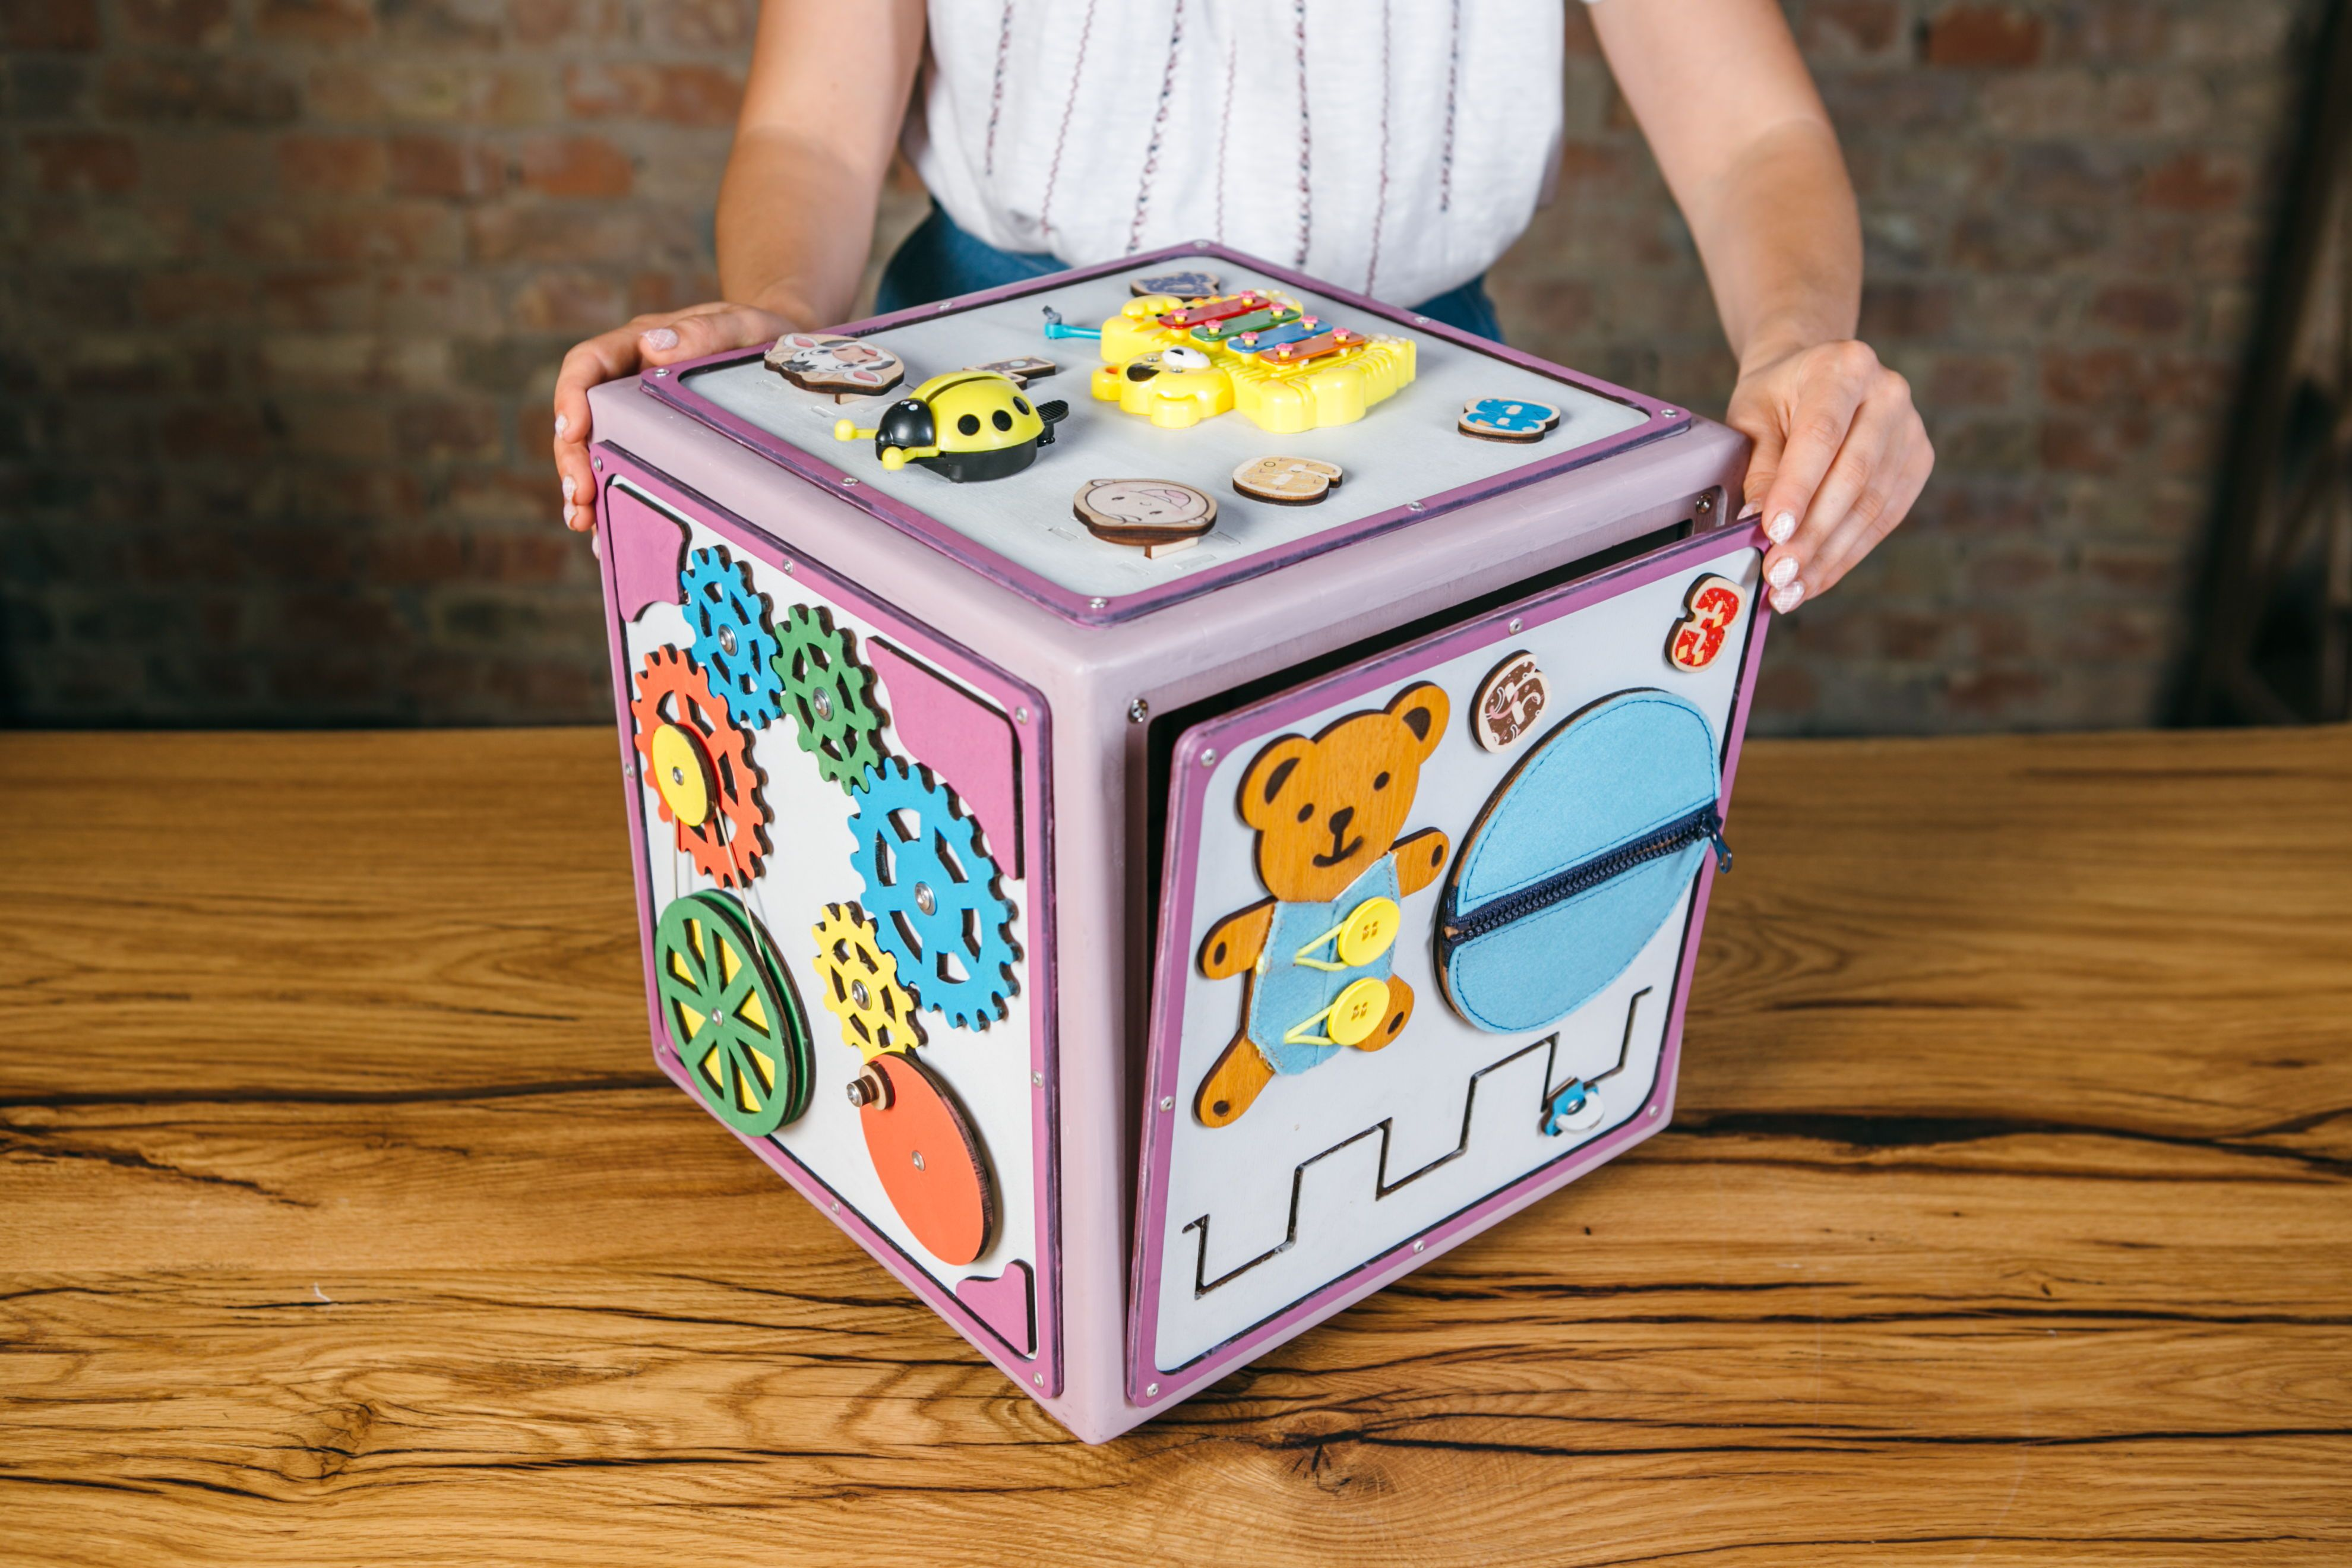 Travel Toy Magnetic Cube 14 Inch Side Fidget Board Busy Board Activity Montessori Toy Gift for Toddler Lacing Sensory Birthday